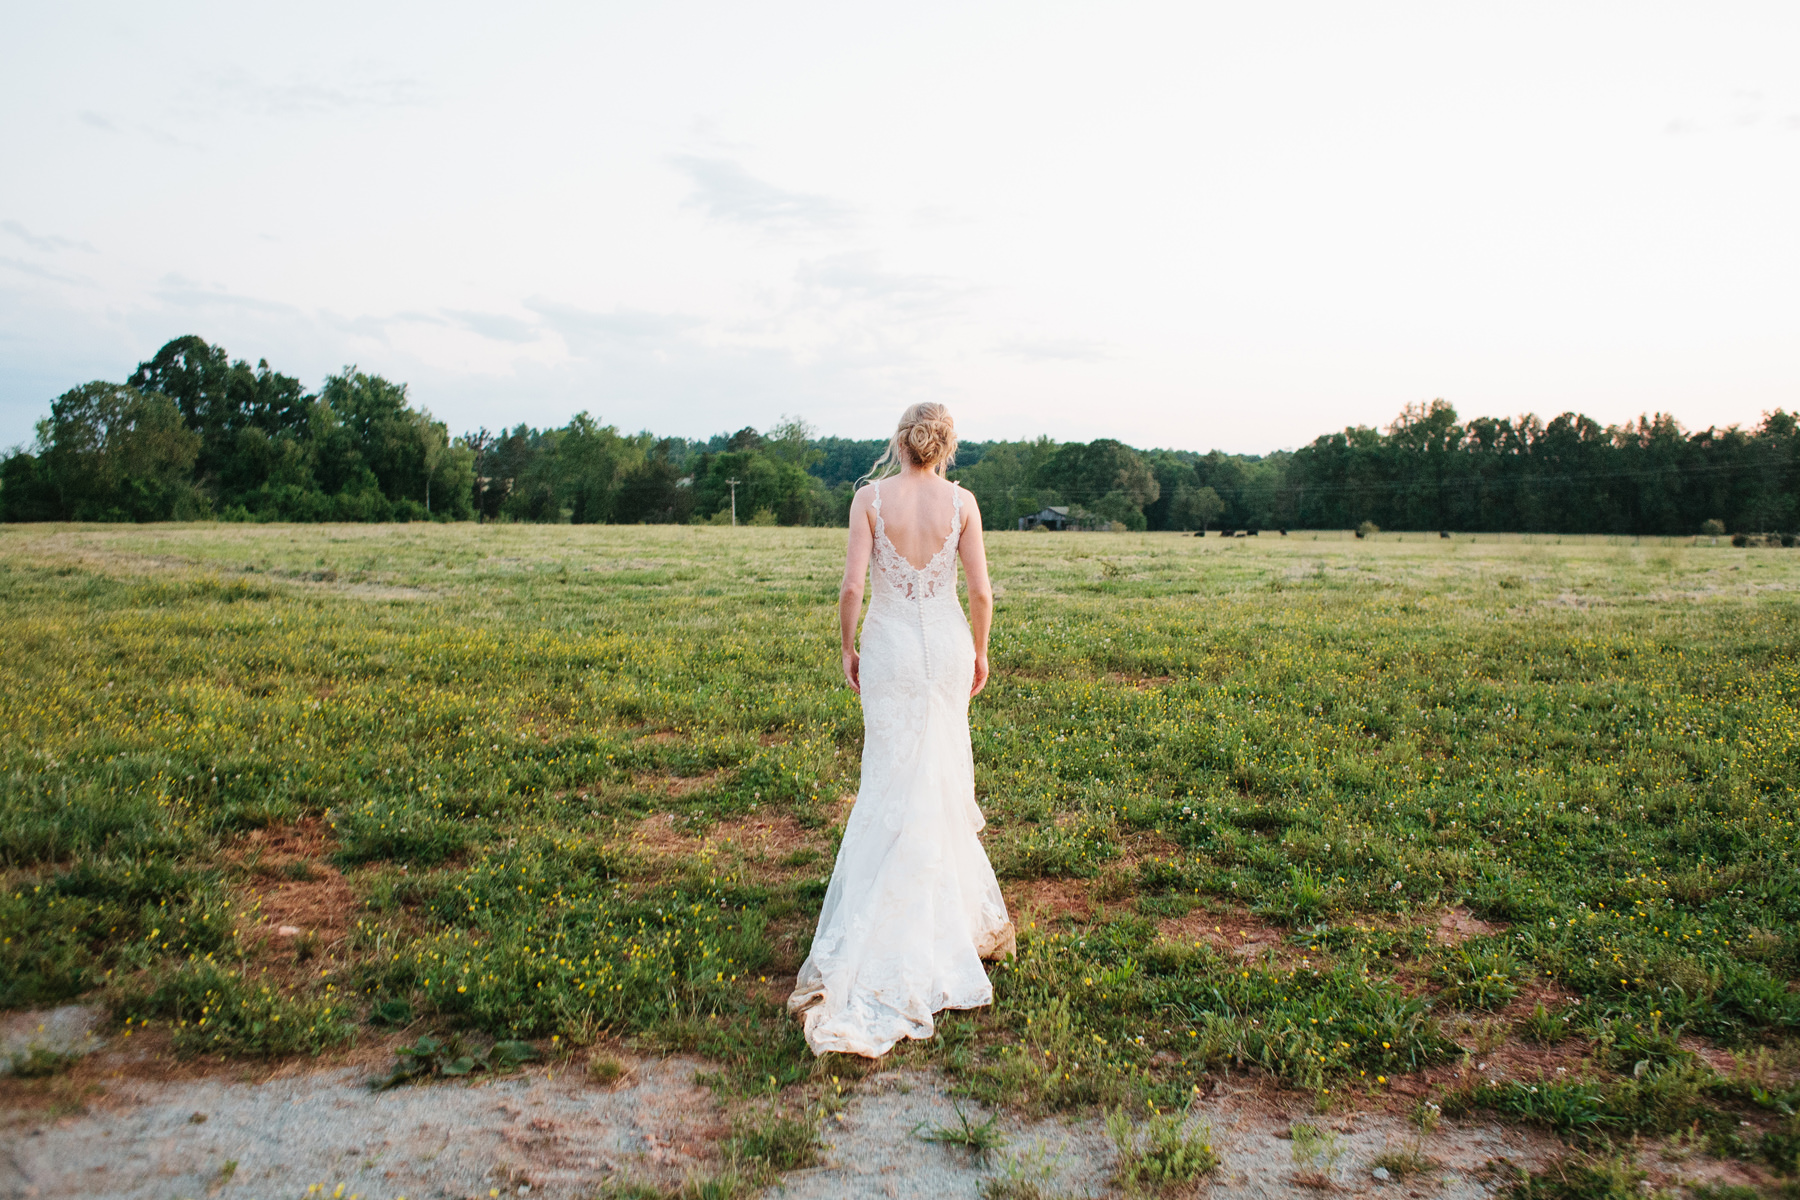 Bride Walking in a Field at Sunset